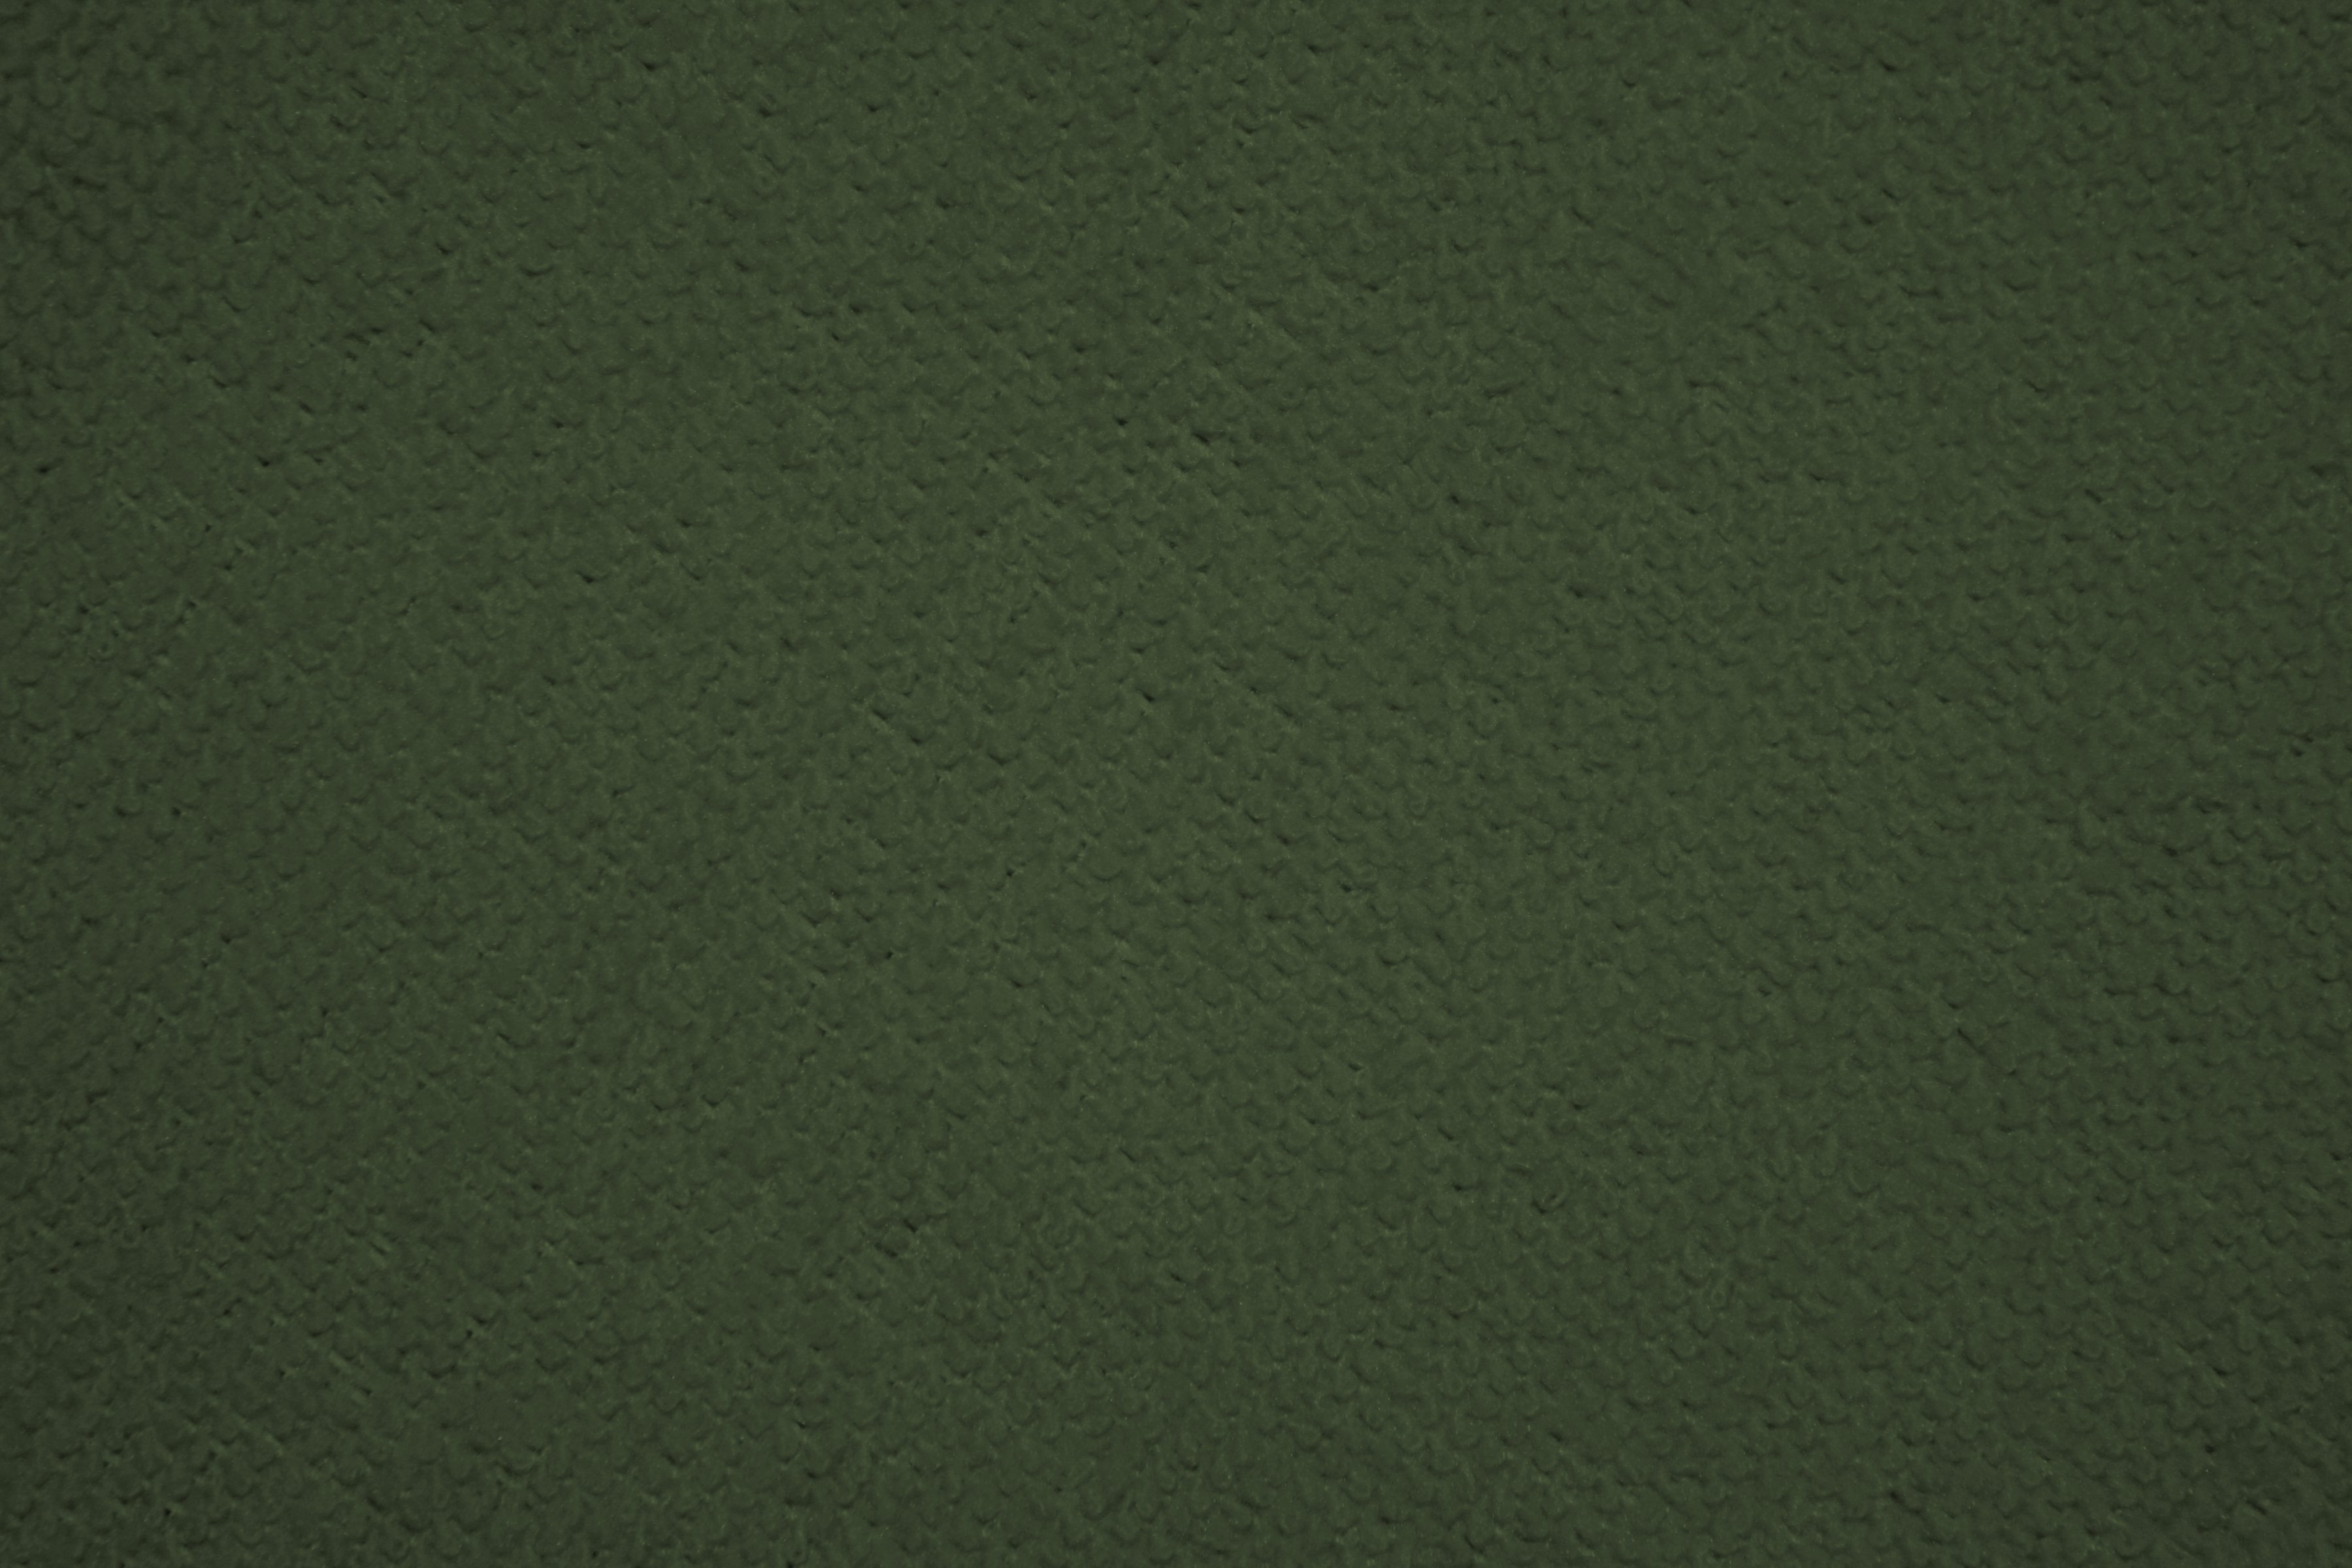 Olive Green Paper Texture Picture | Free Photograph